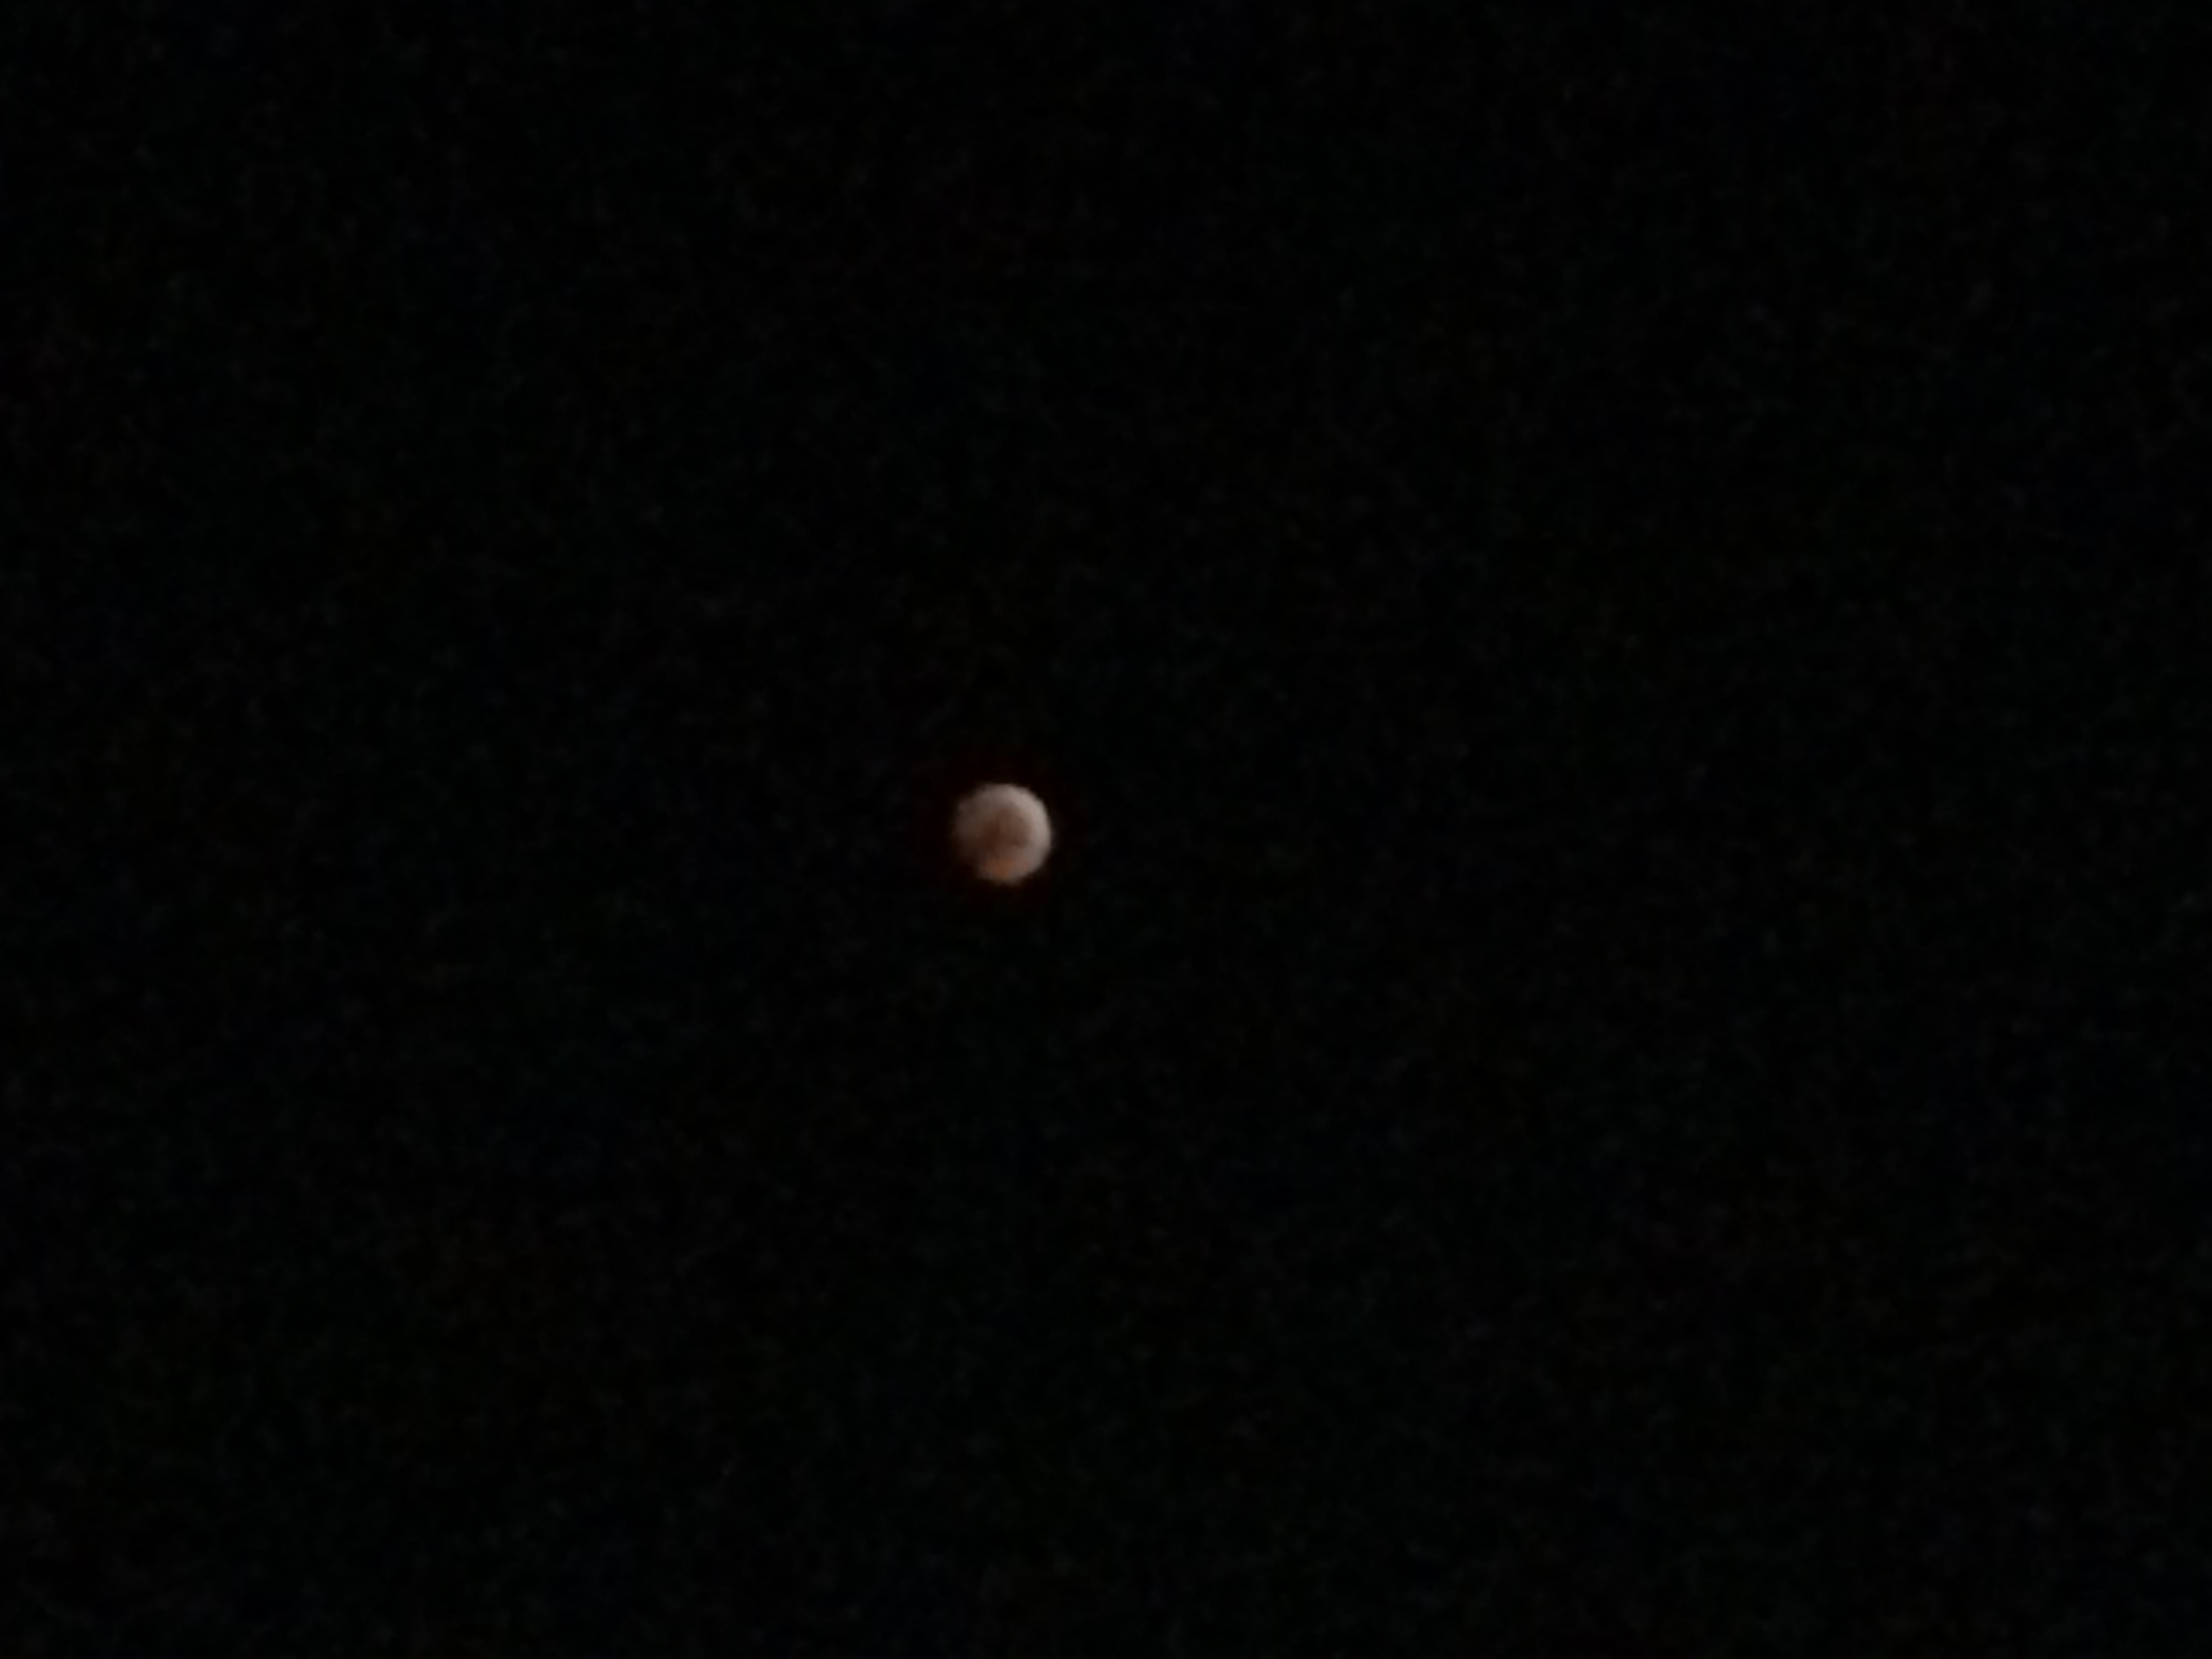 Full lunar eclipse - moon in earth's blood red shadow